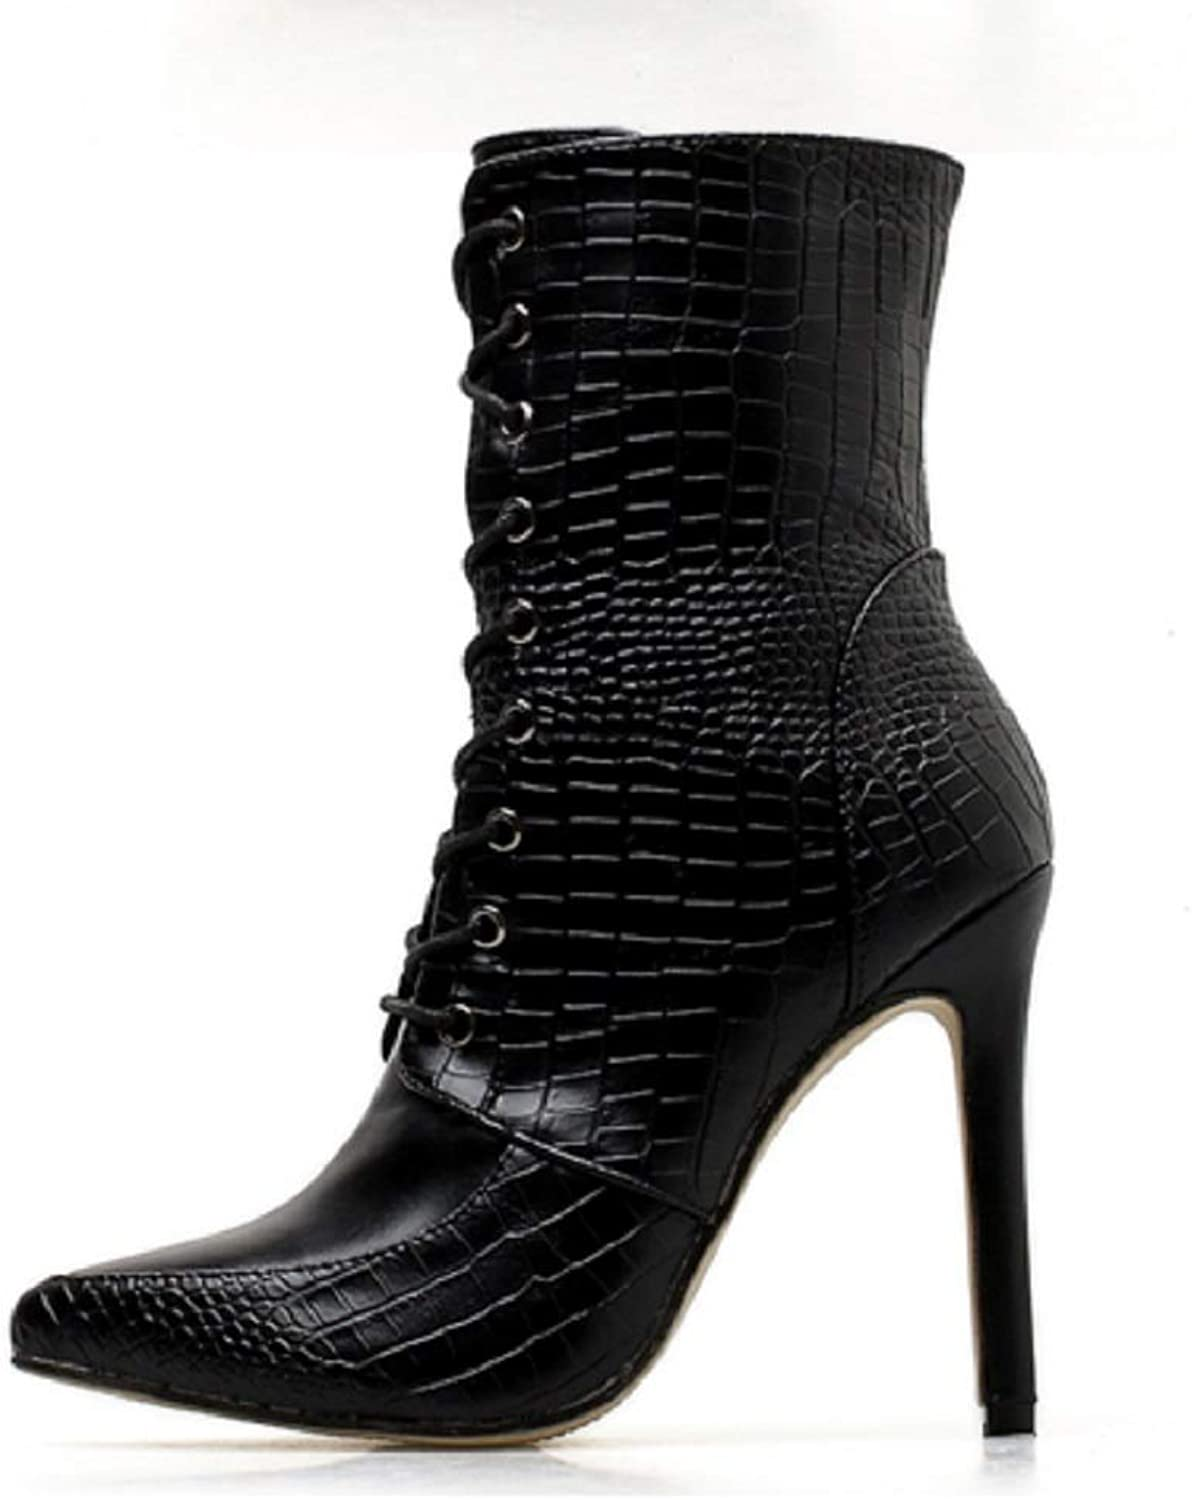 Ladies Women Sexy Thigh HIGH Heels Ankle Boots Calf Biker Boots Erpentine Lace-up Women's Boots with Stiletto High Heel Martin Short Boots